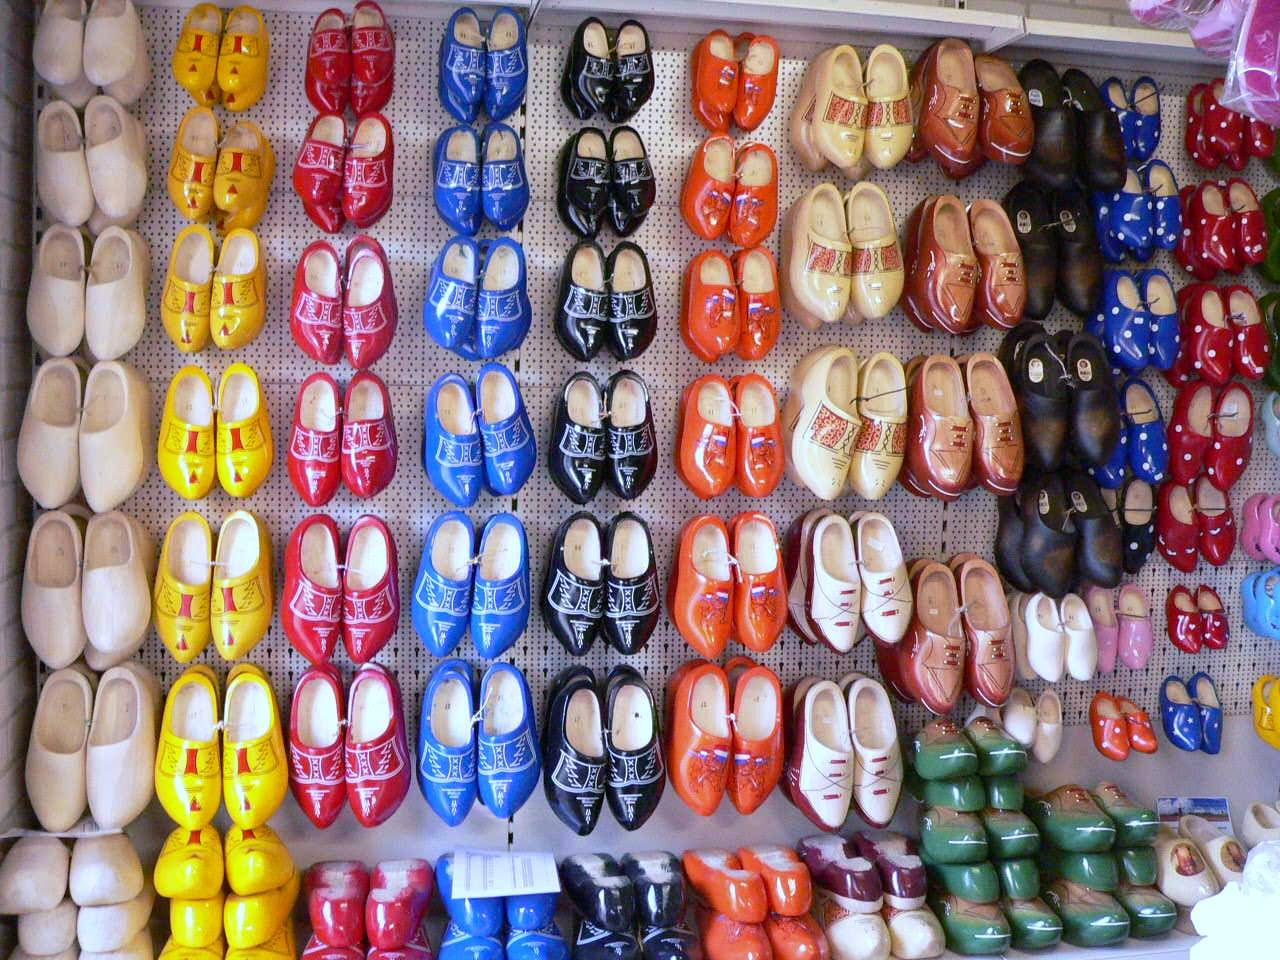 Wooden shoes, fun for young and old